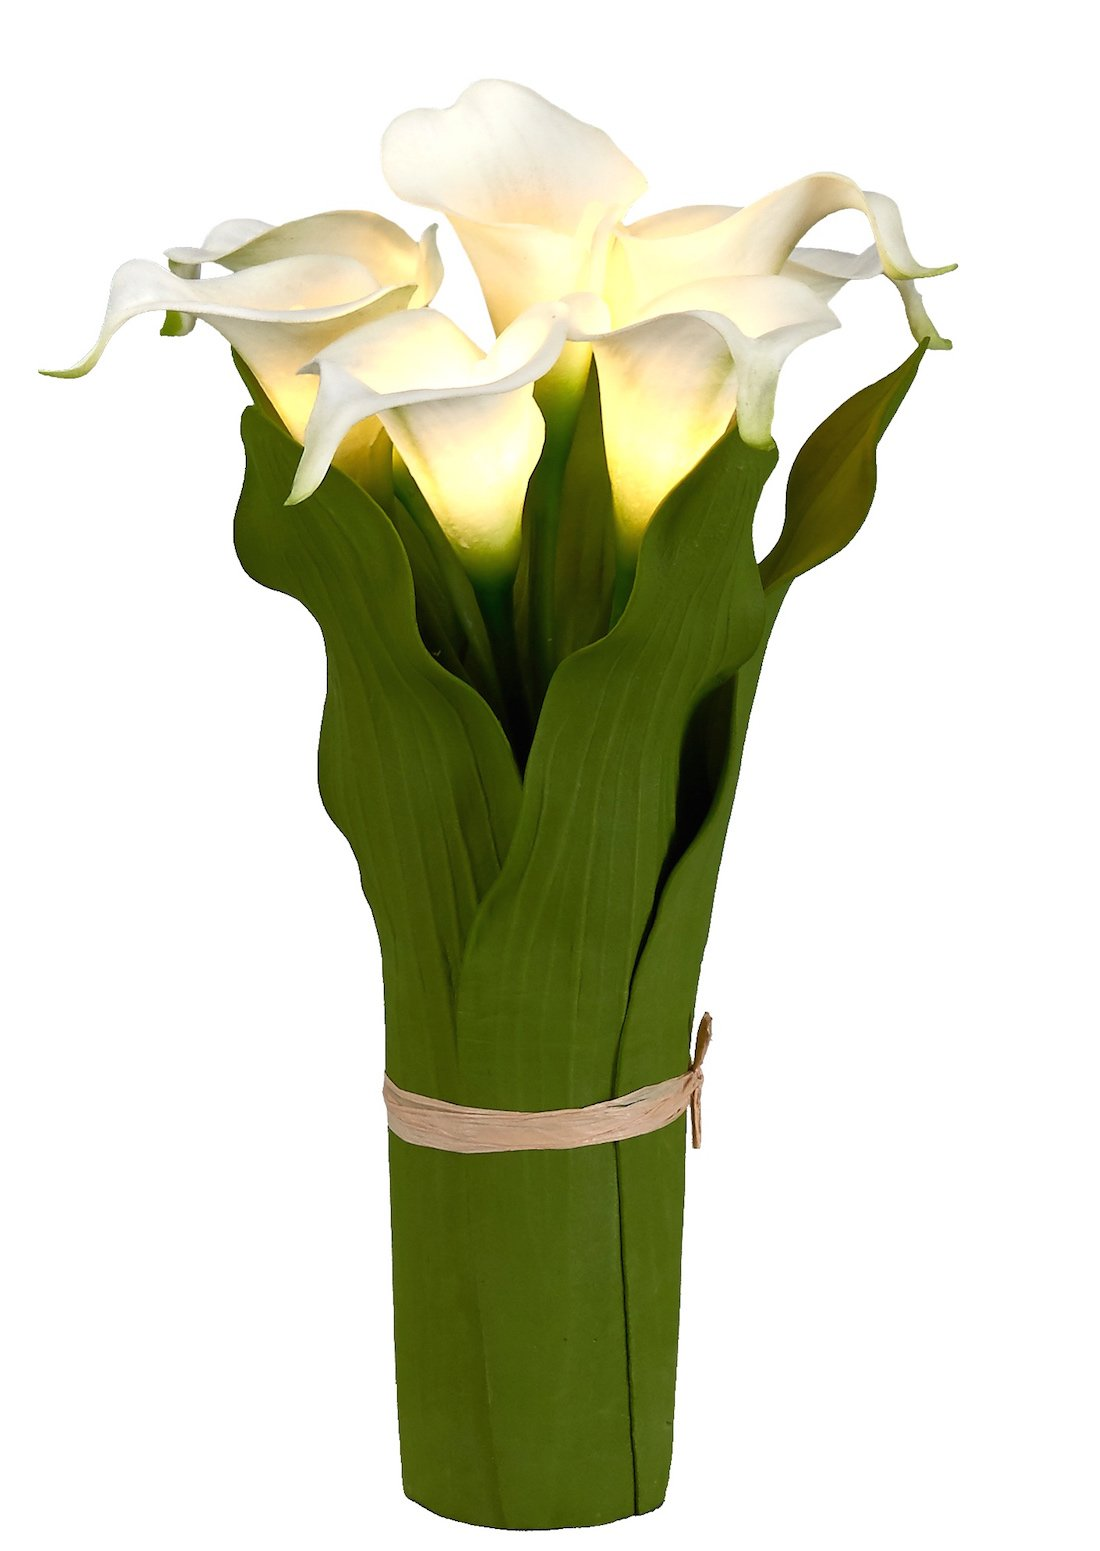 Homeseasons LED Lighted Artificial Flower Arrangement-Battery Operated 7 Heads Calla Lily Light with Green Leaves (White)